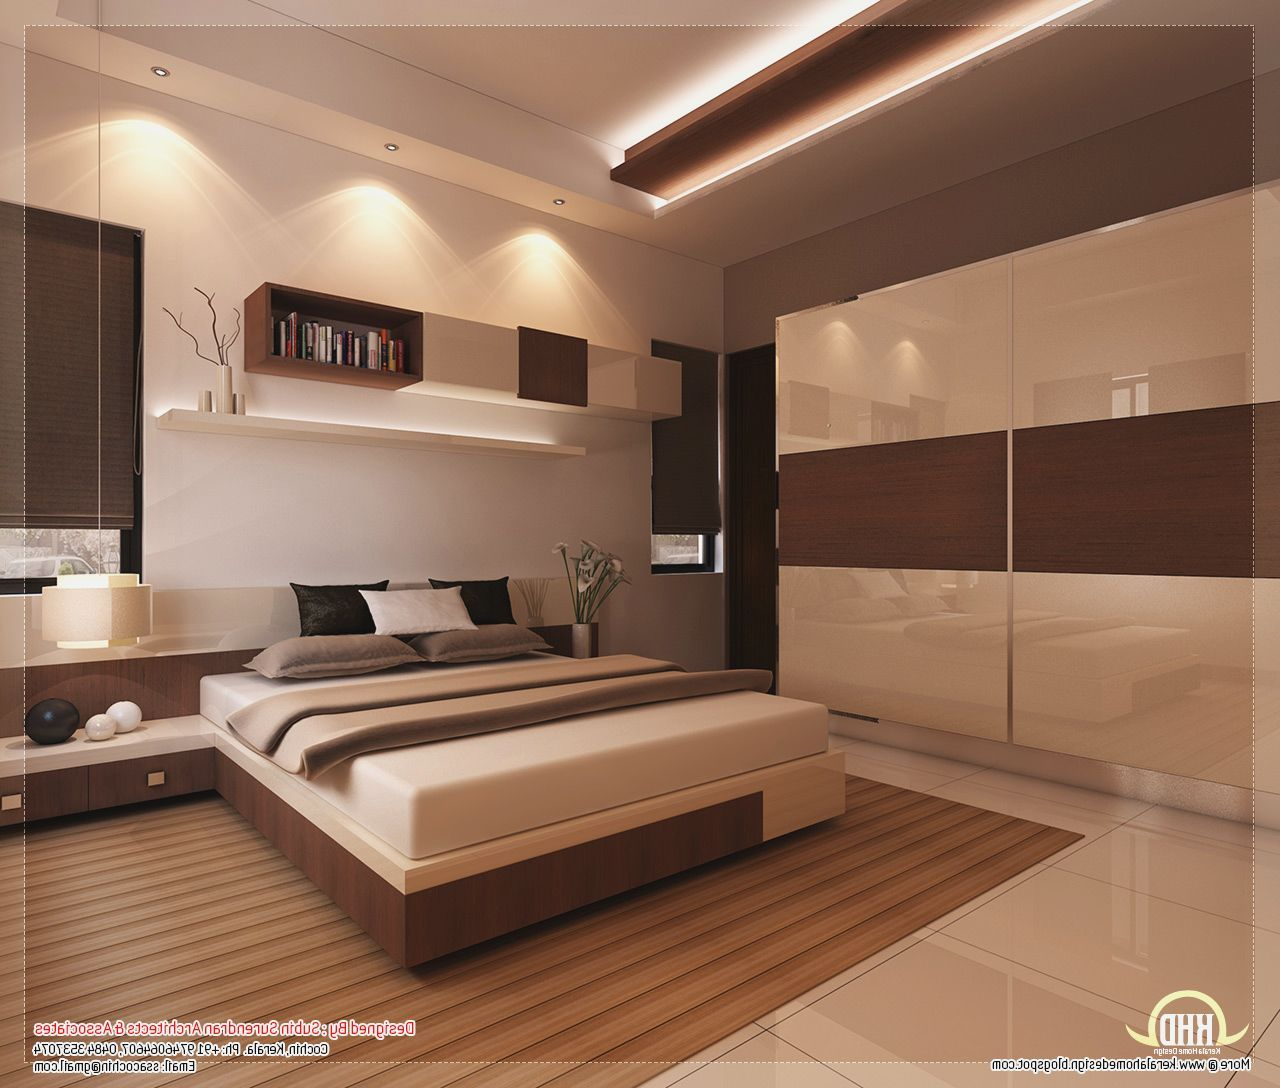 Bedroom designs india low cost more picture bedroom - Oggetti design low cost ...